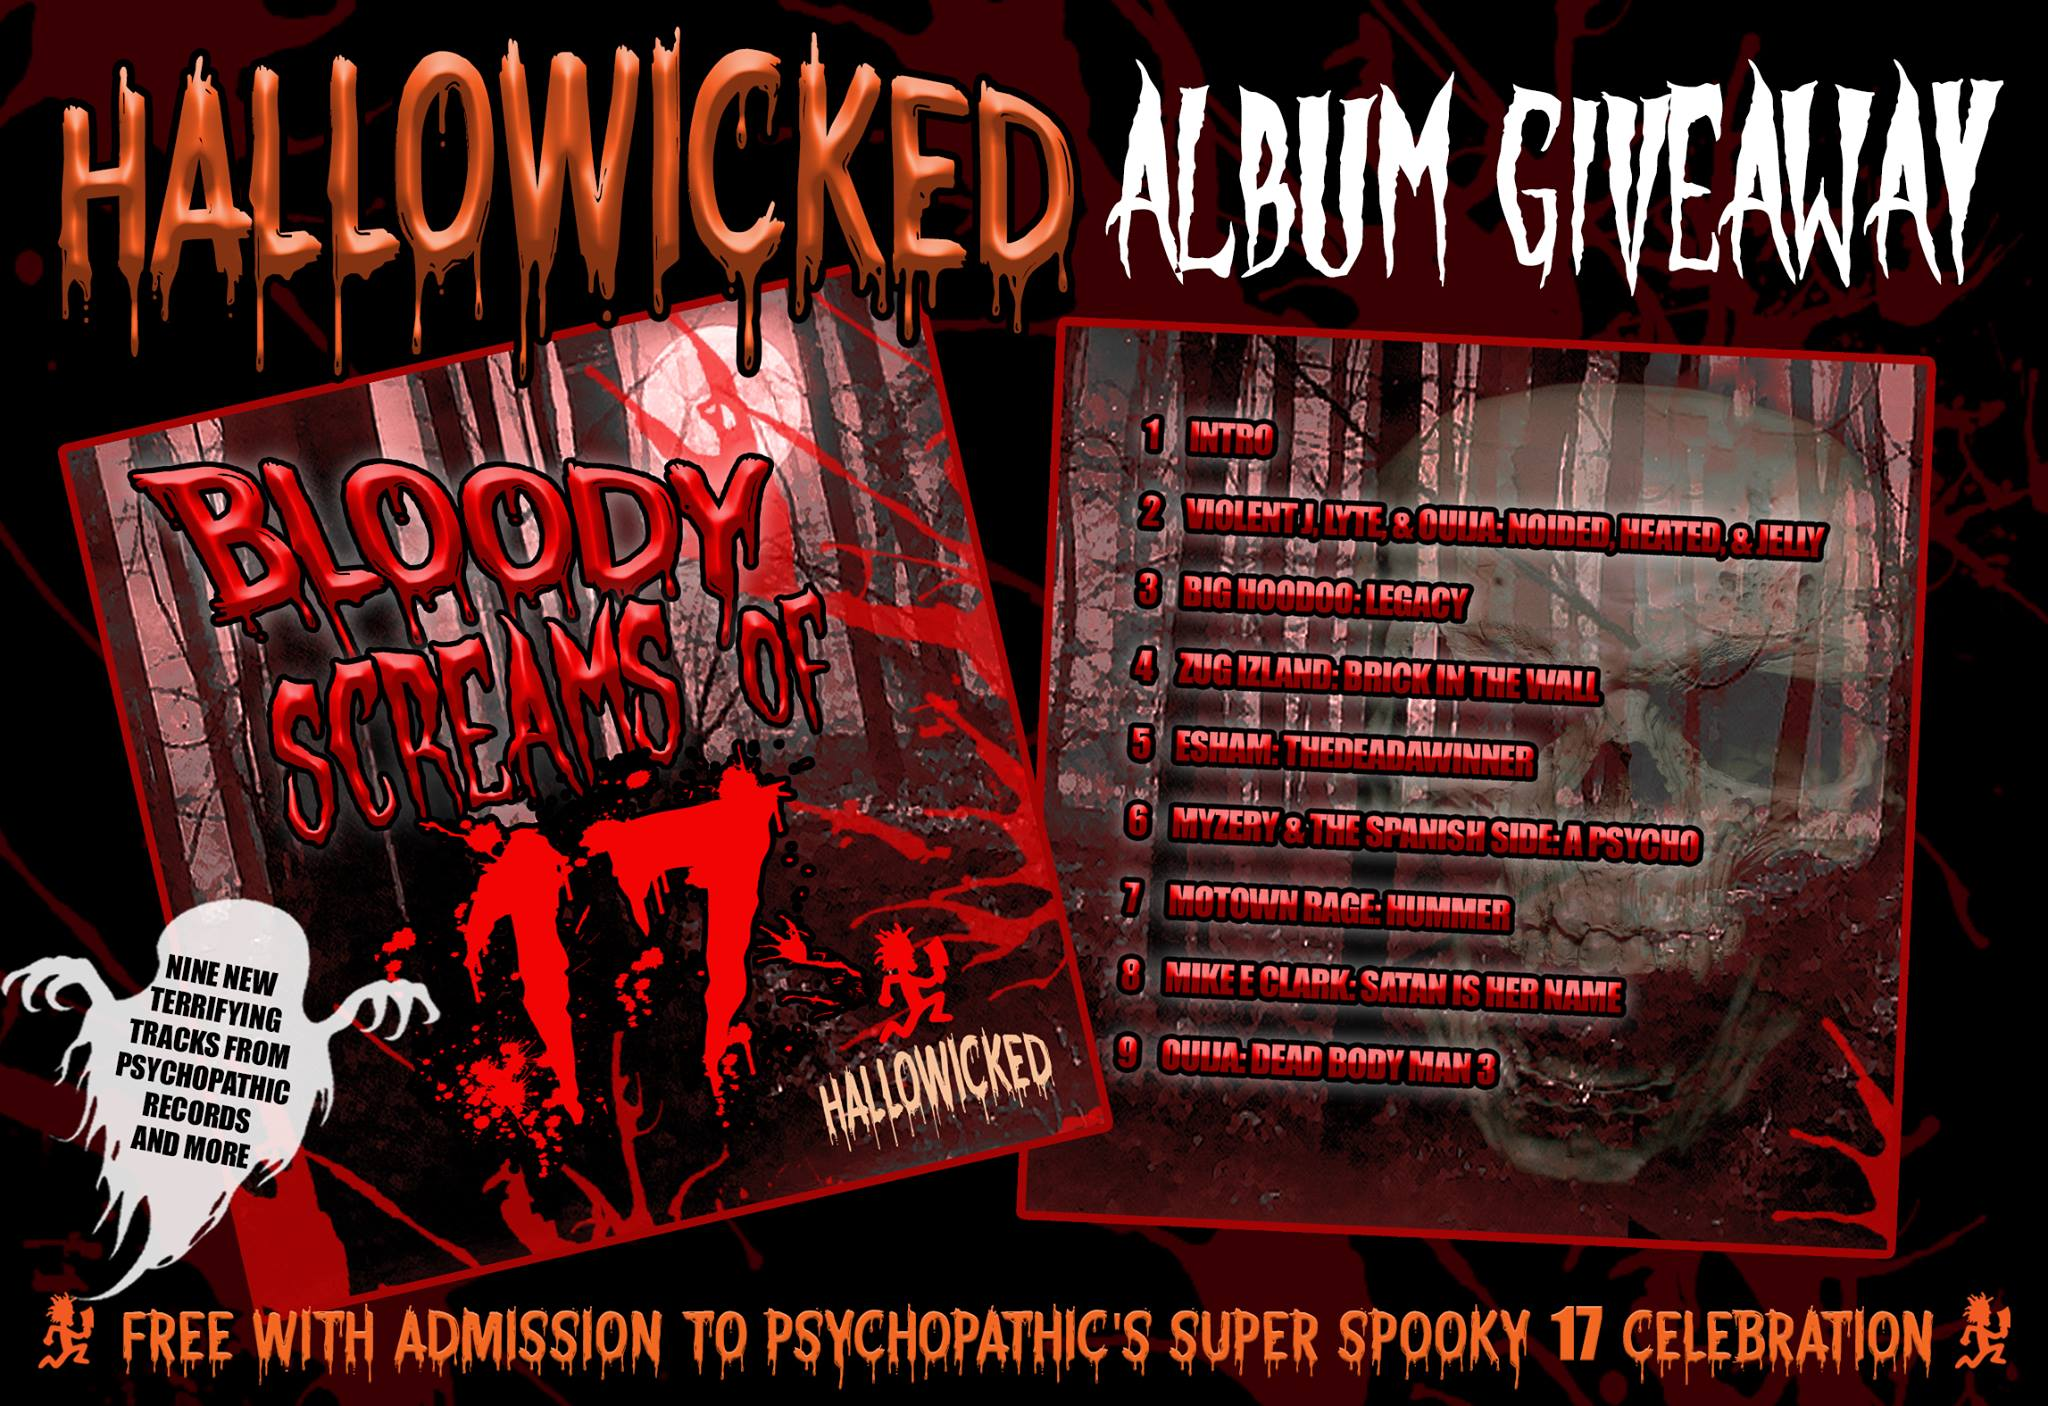 Icp Albums And Songs List Classy hallowicked 2017 album giveaway (9 tracks for free!) | faygoluvers